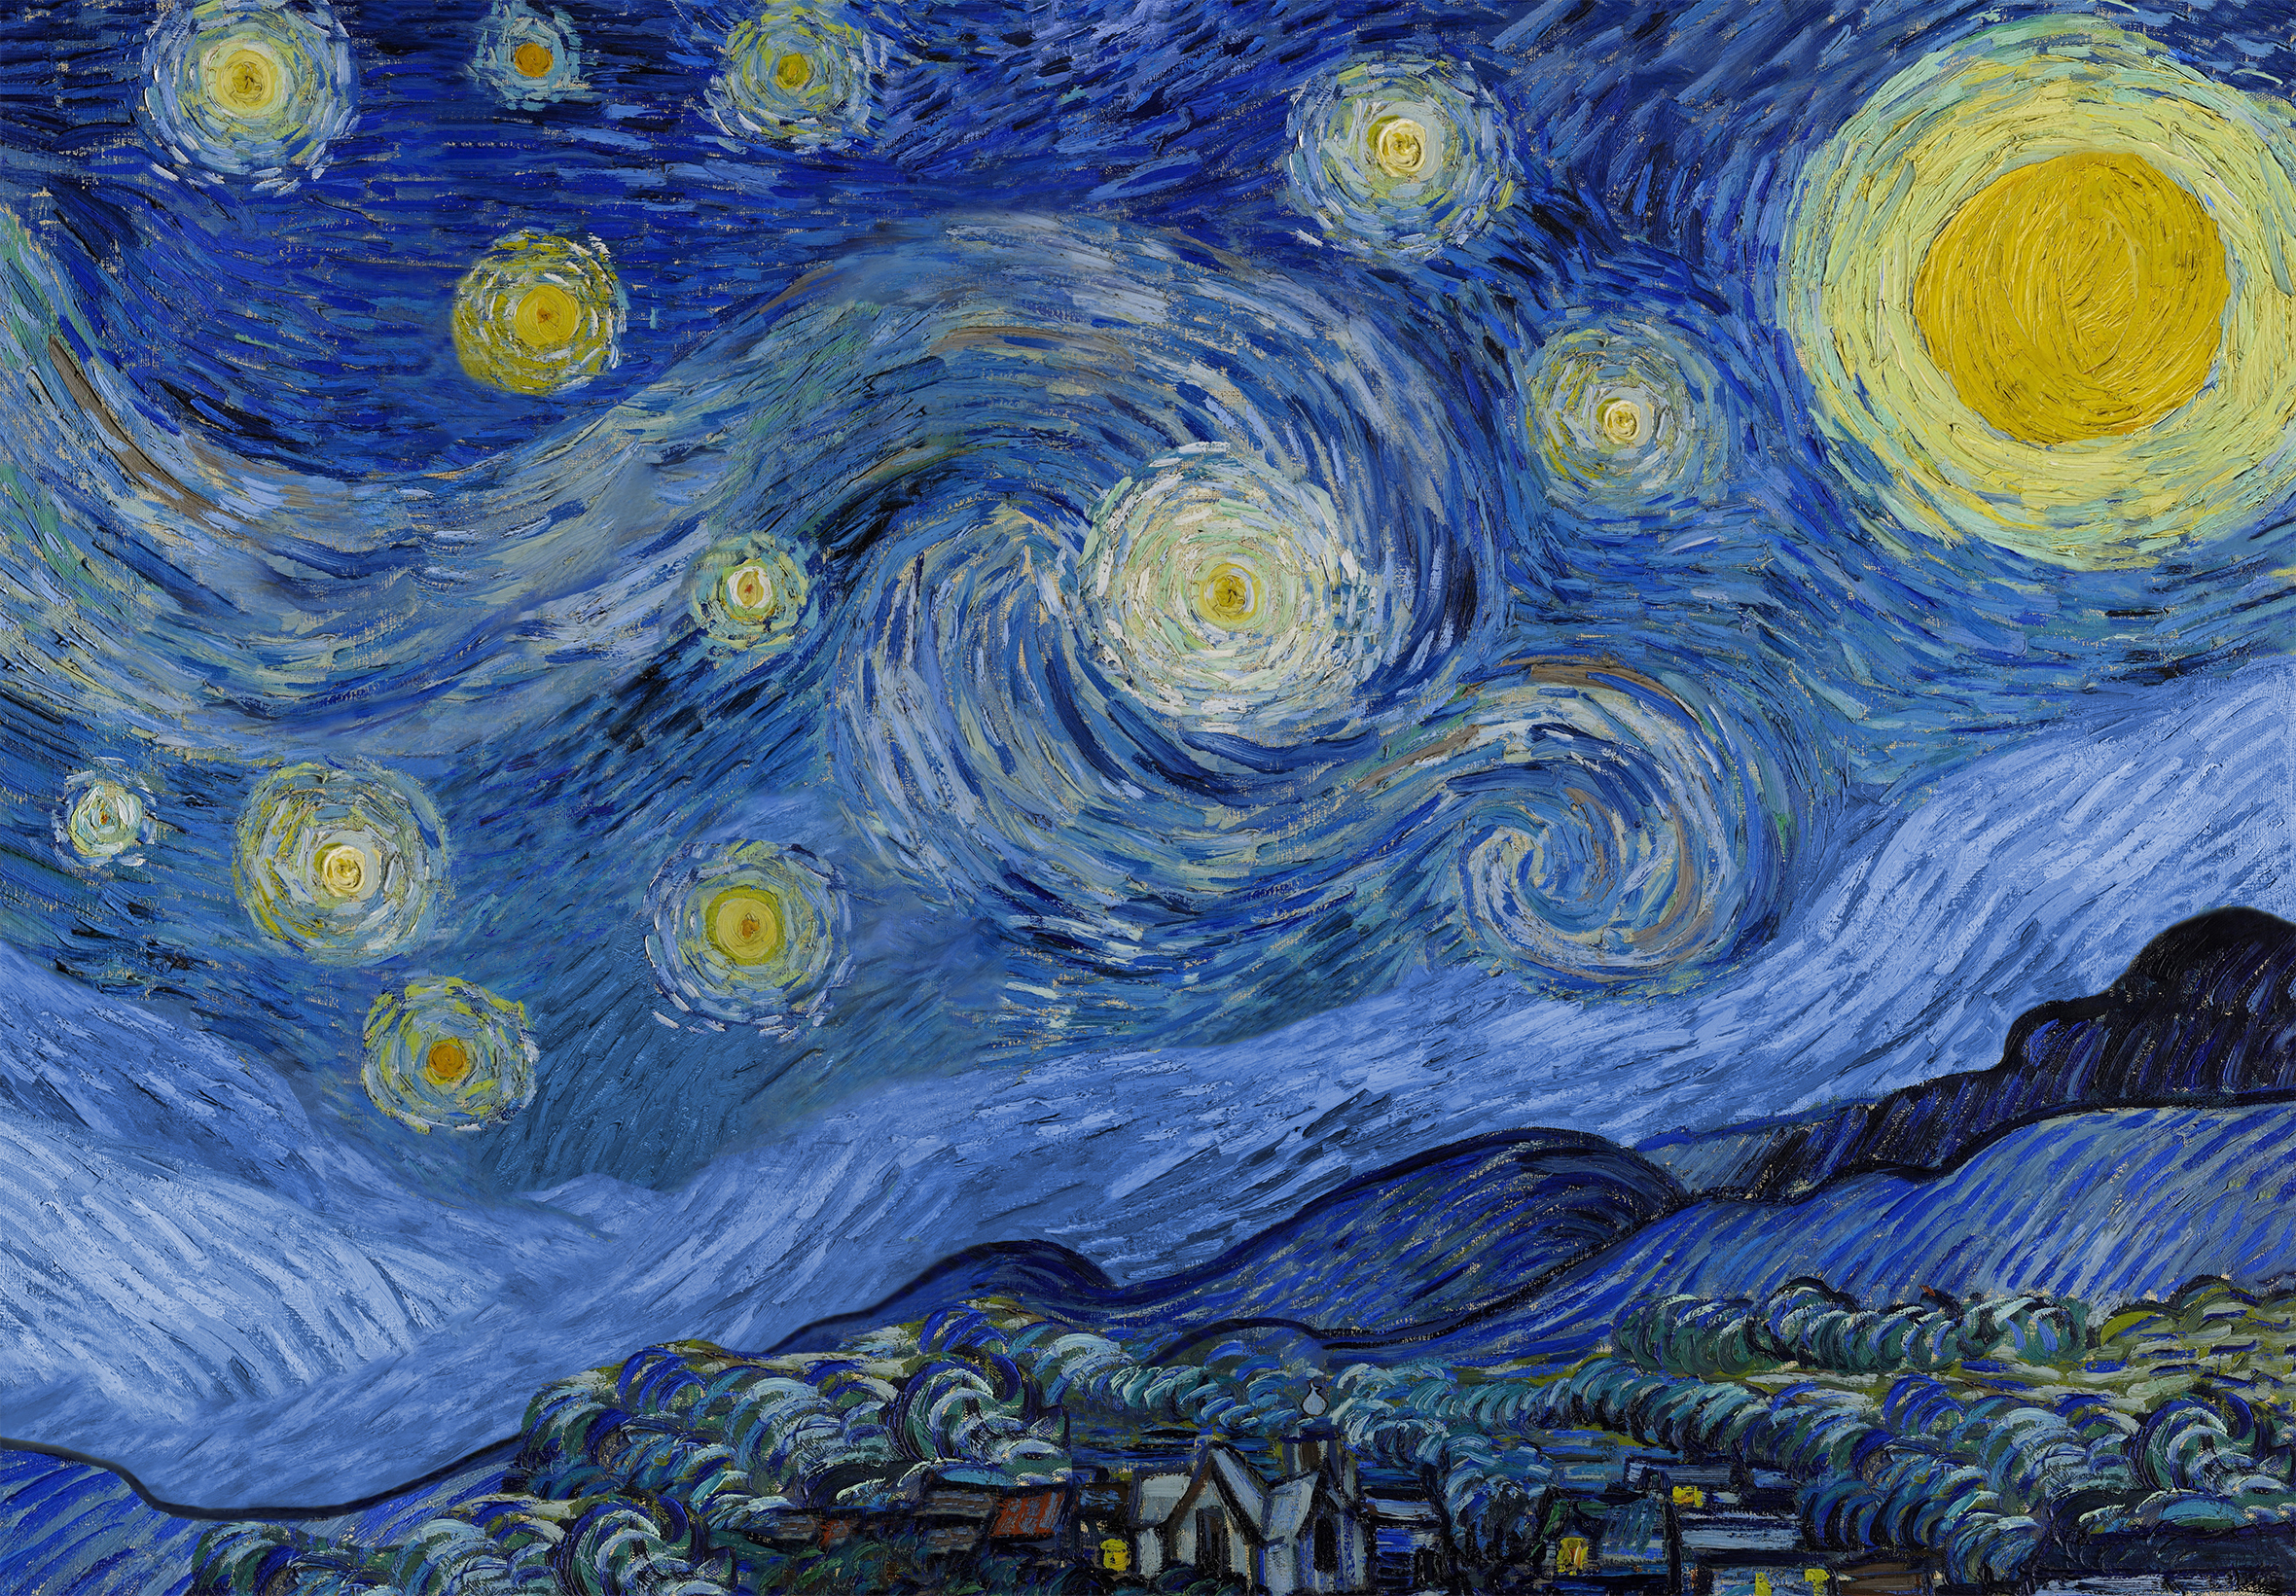 a play on van Gogh's the starry night, better than a thousand months featured no cypress tree and 11 stars and a sun and a larger moon representing Yusuf or Joseph (Alay hiss salaam)'s dream